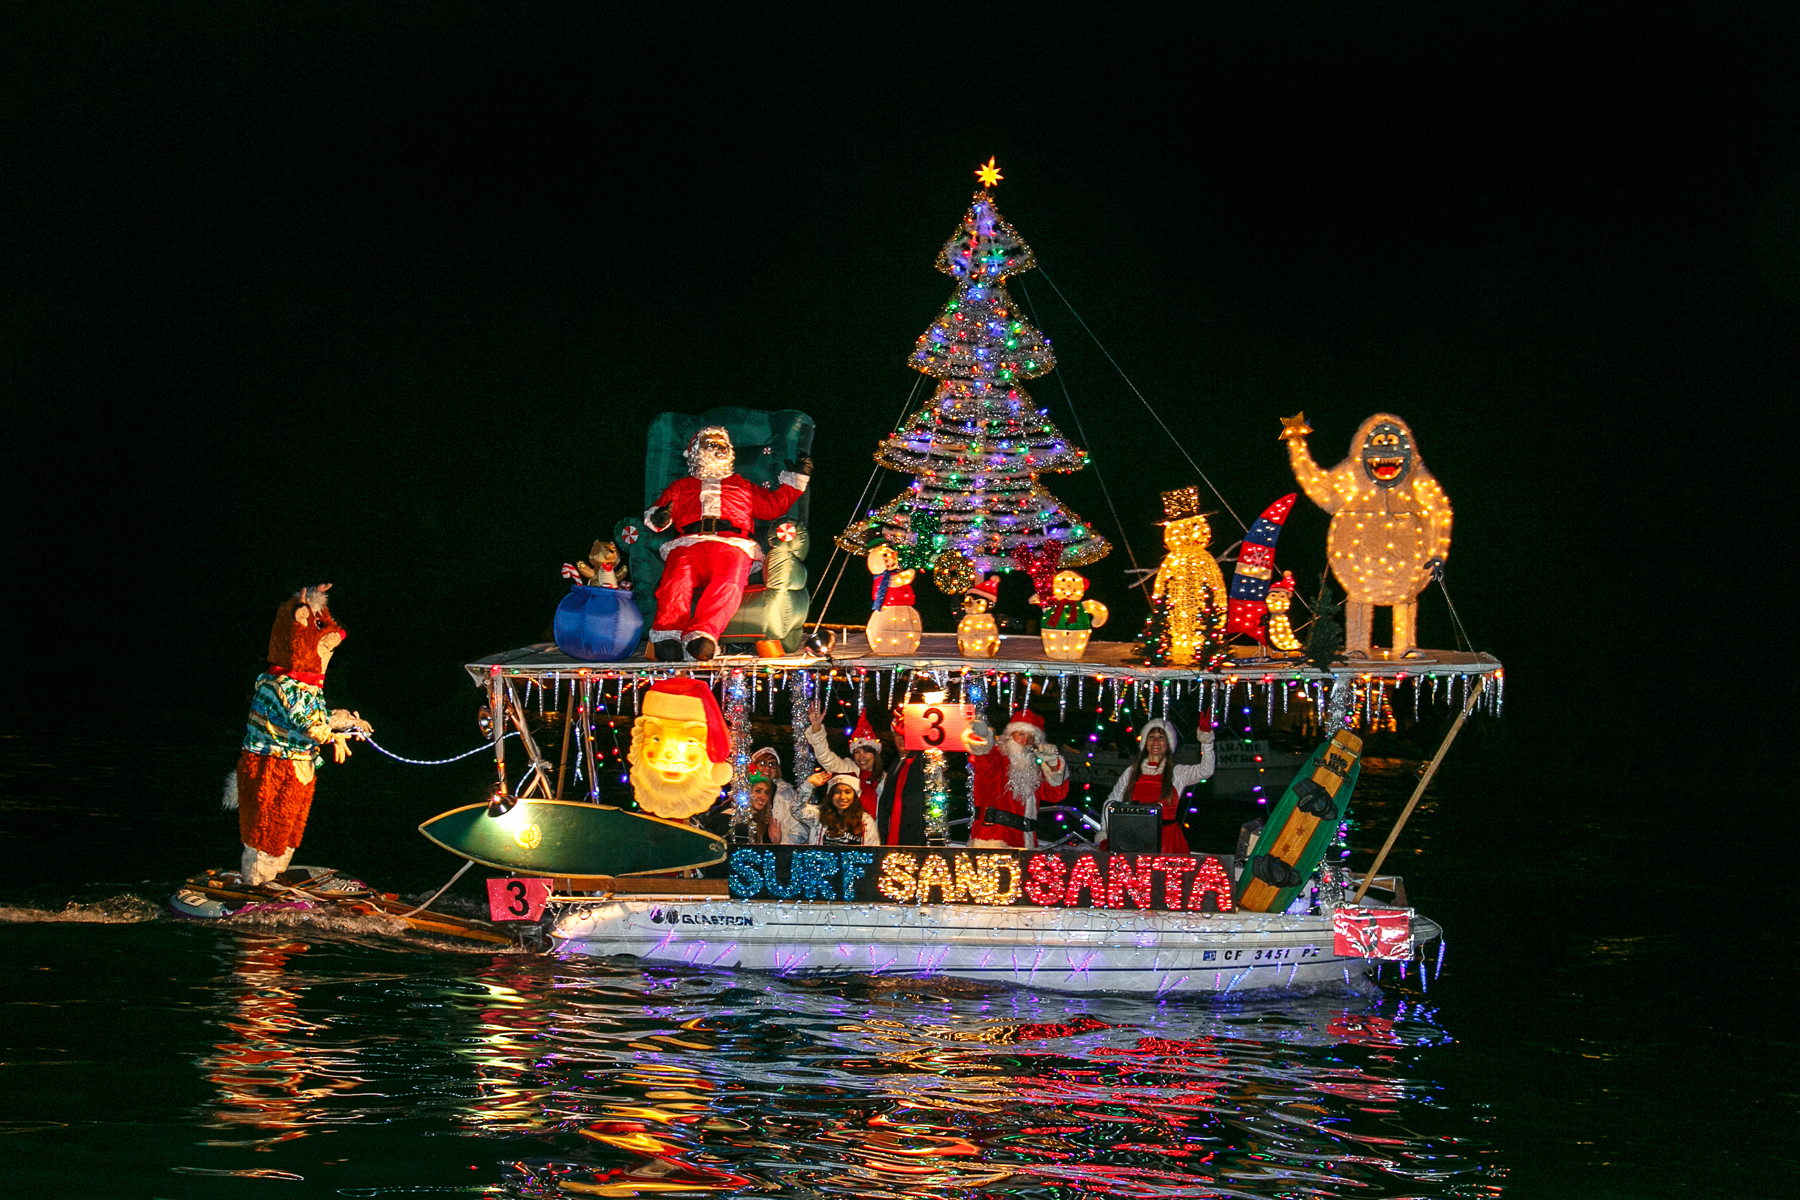 Balboa Island Christmas Boat Parade Of Lights 2013